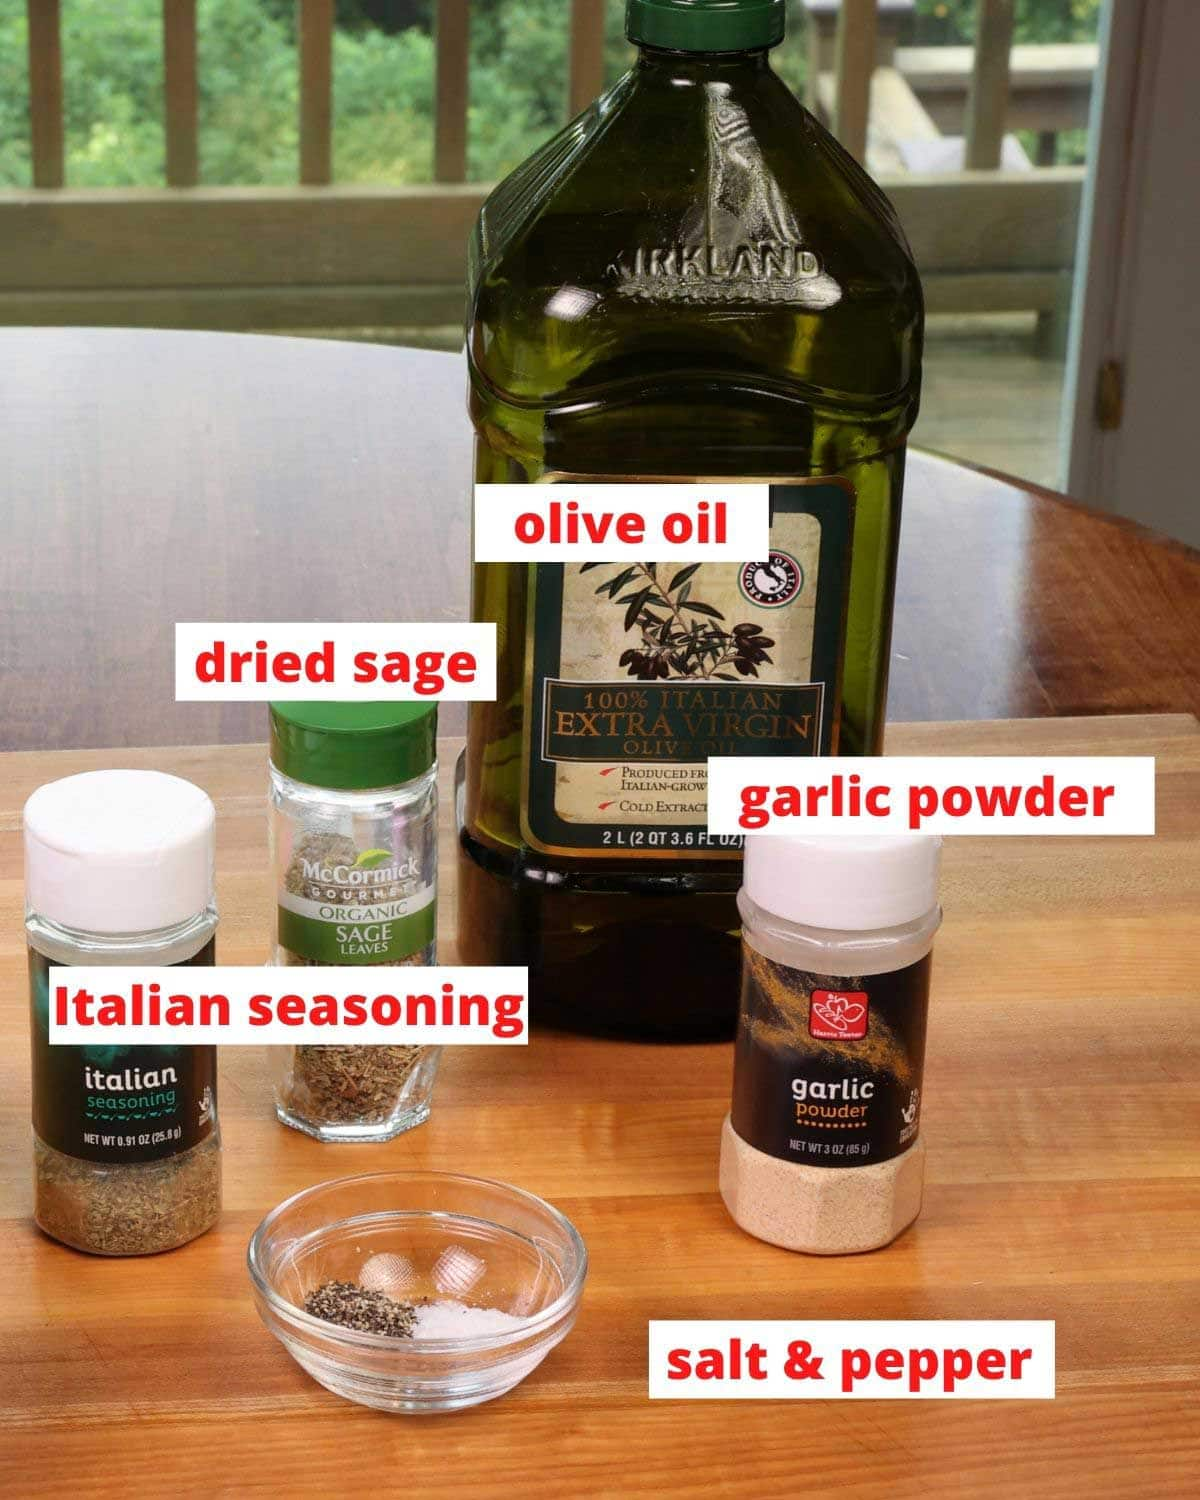 seasonings and olive oil on a wooden cutting board in a kitchen